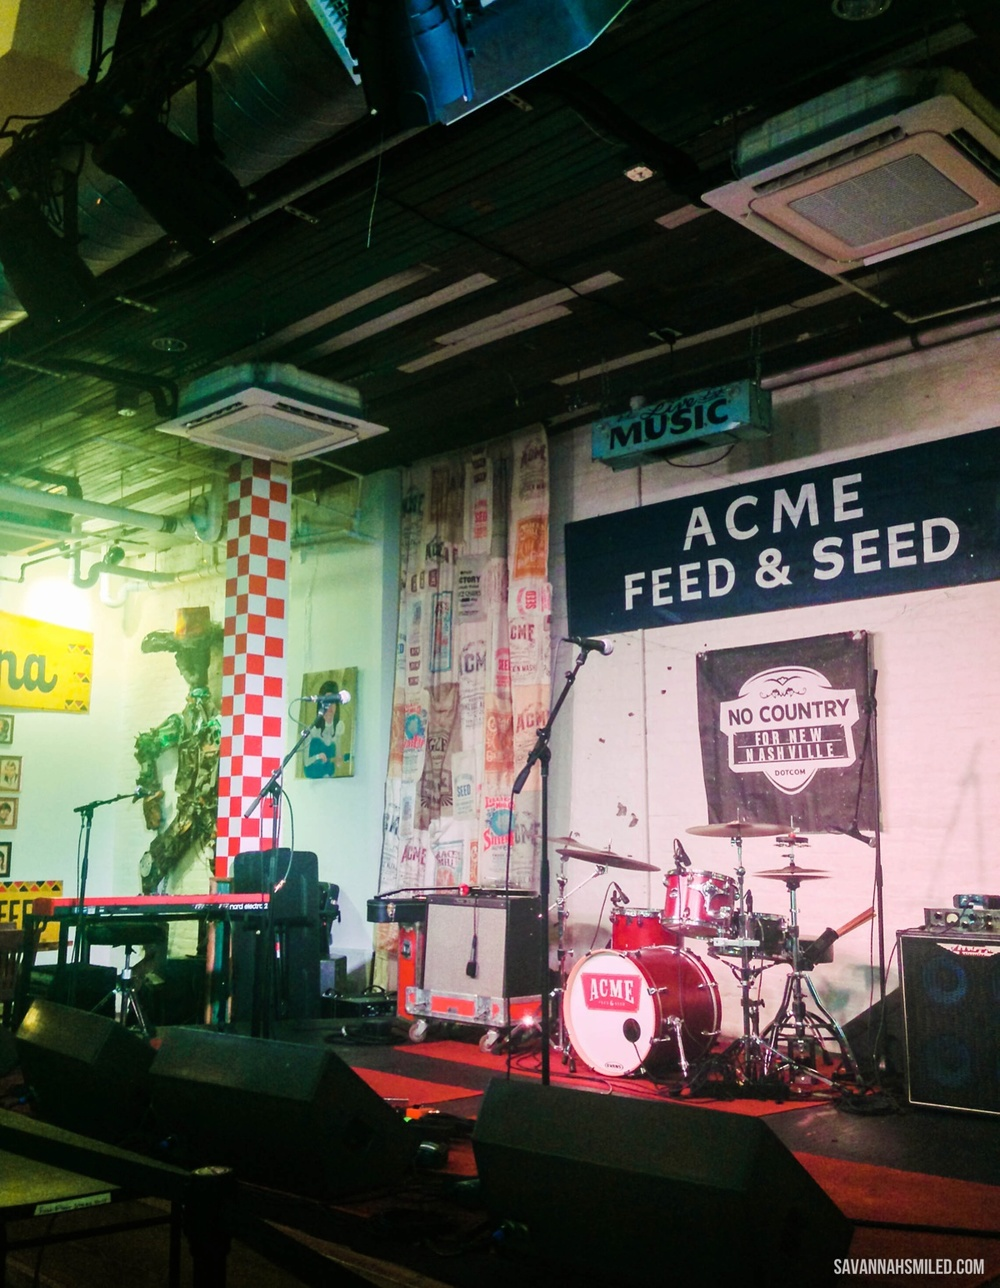 acme-feed-seed-broadway-nashville-3.jpg